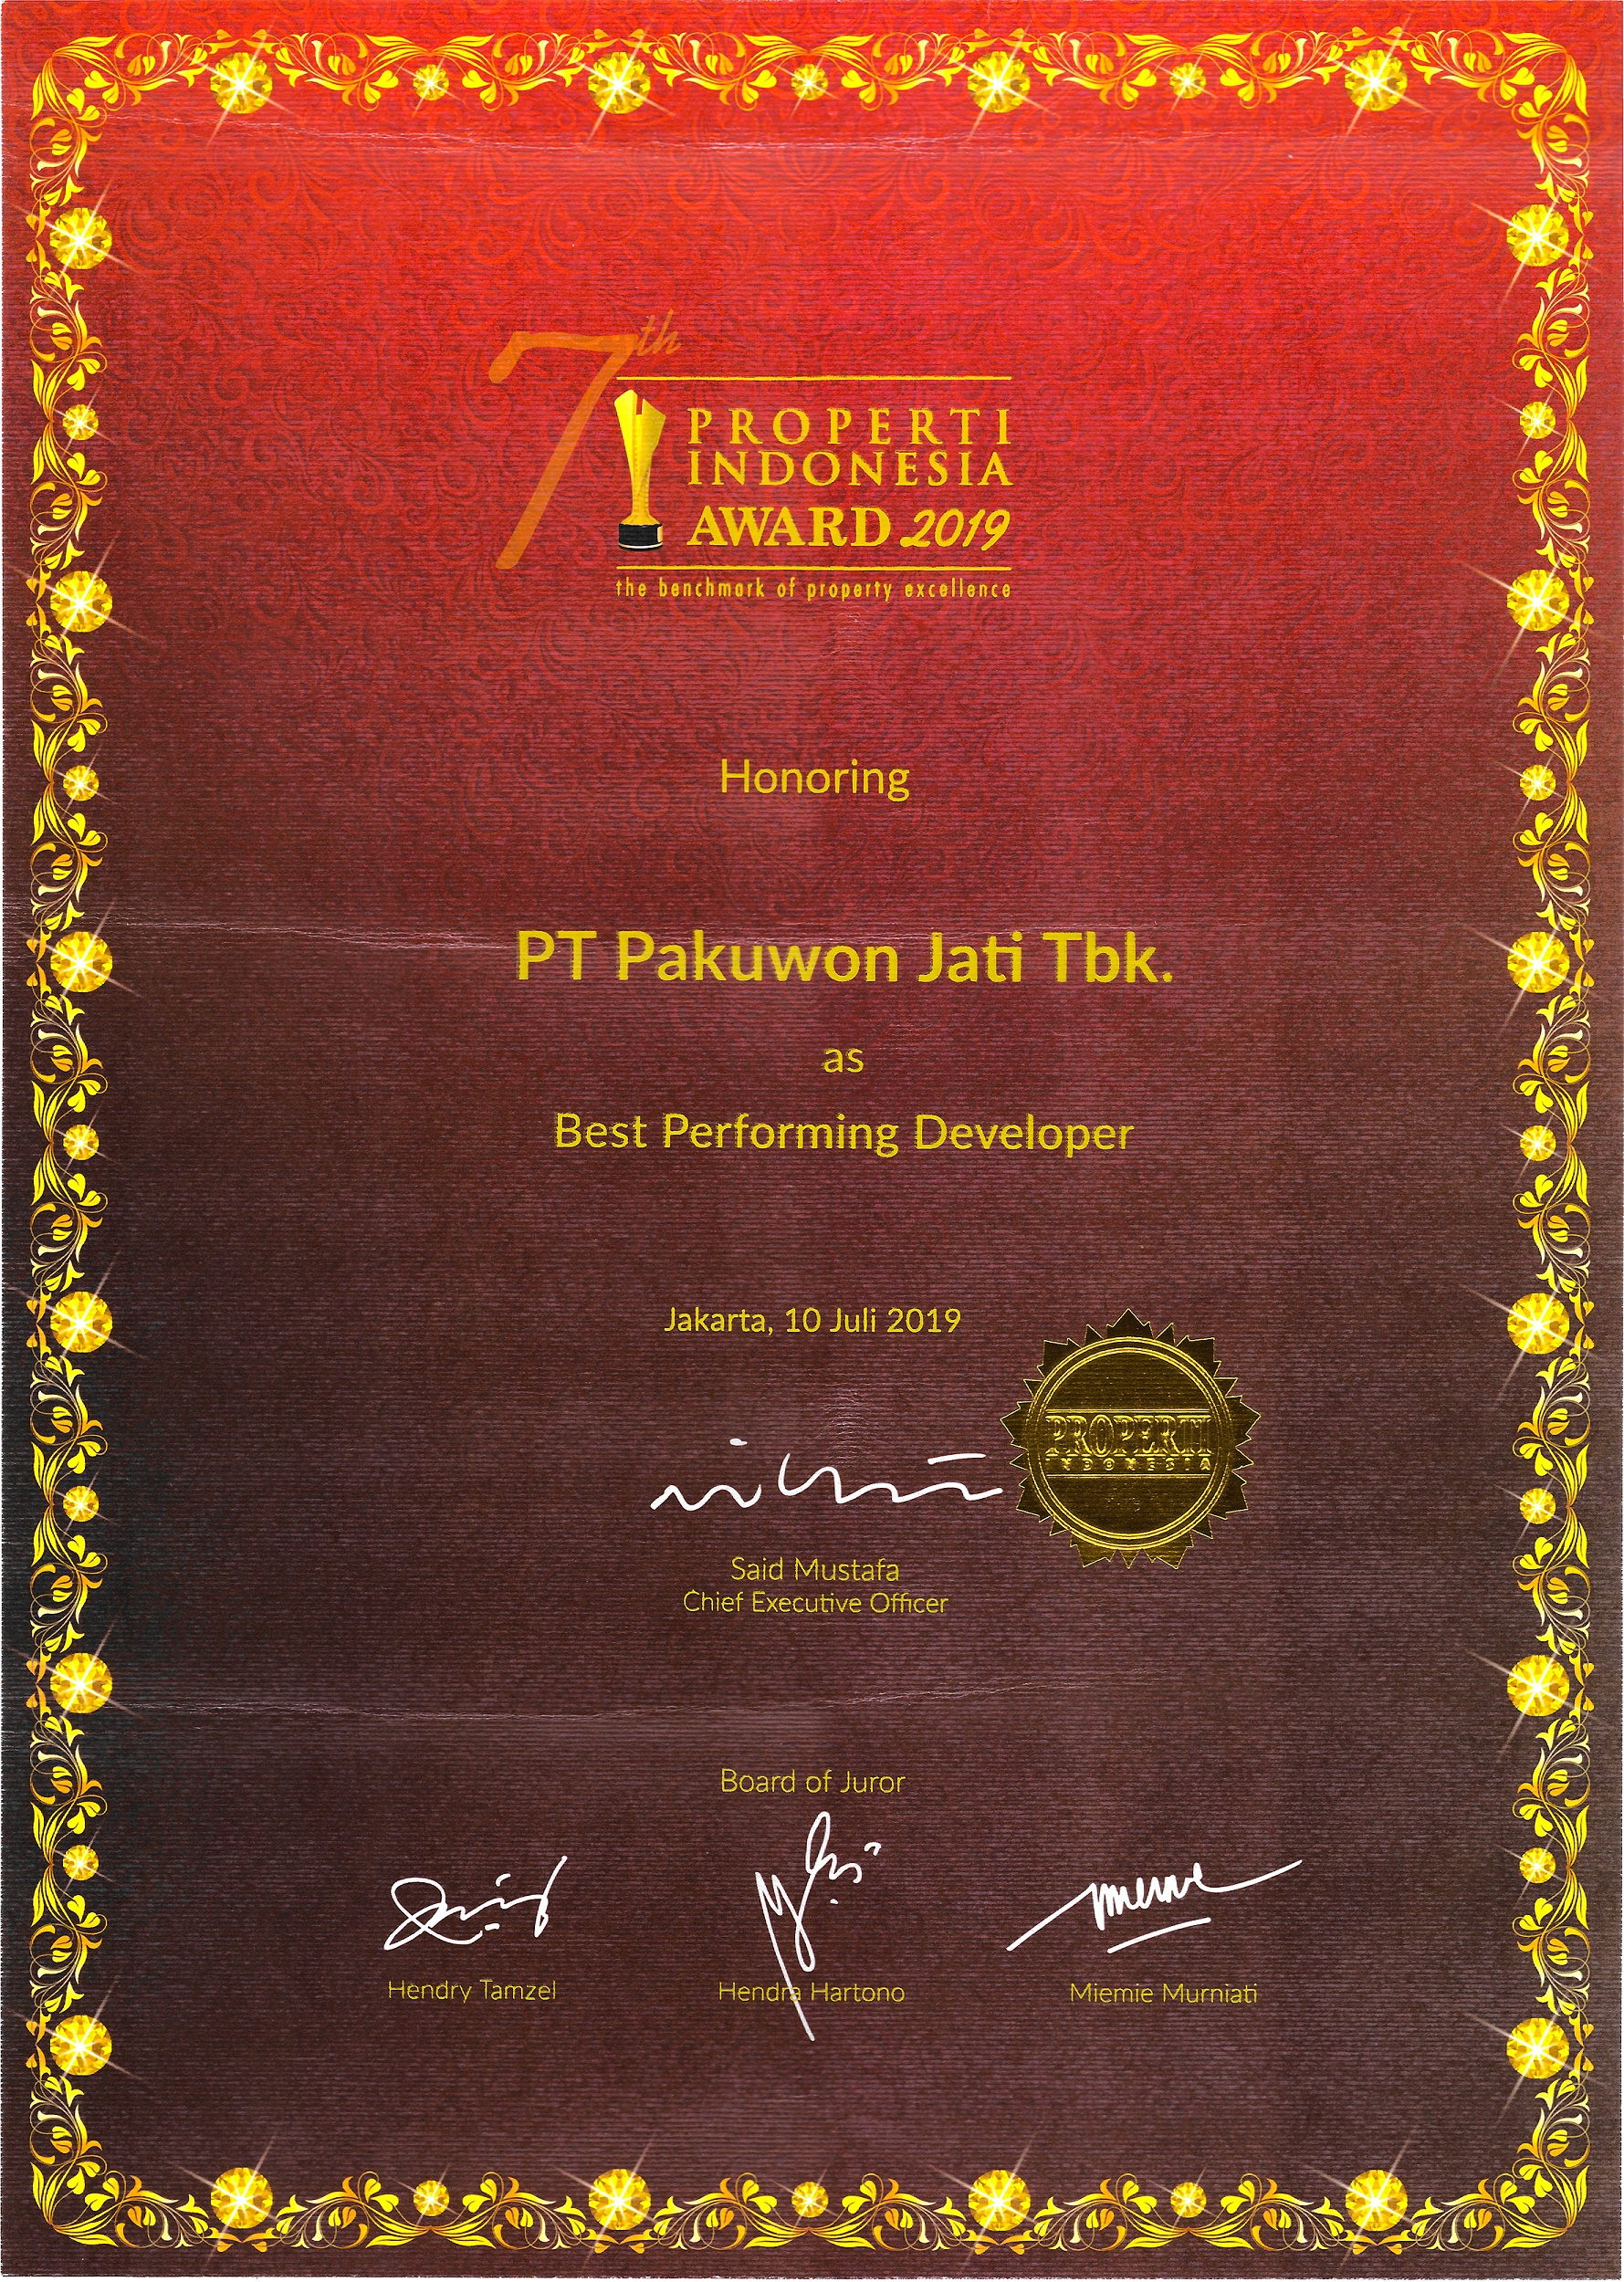 /public/files/image-companny/award-slider/BestPerformingDeveloper2019Piagam.jpg